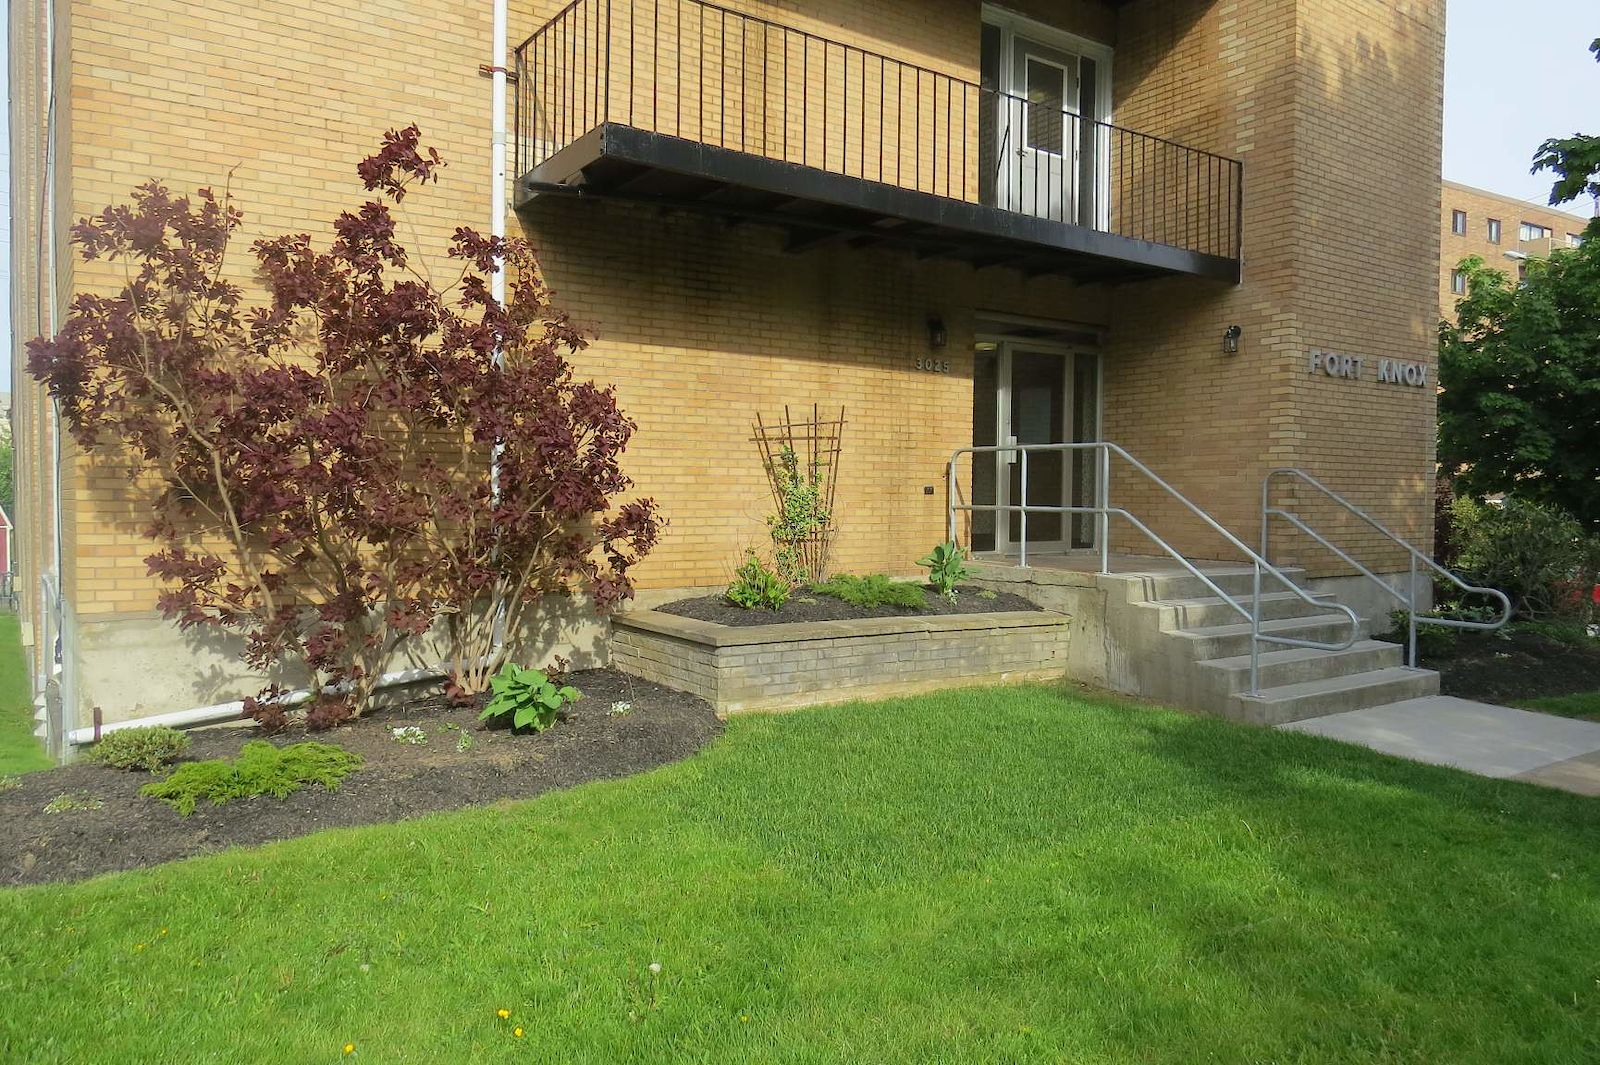 Halifax Apartment For Rent | The Fort Knox | ID 369311 ...